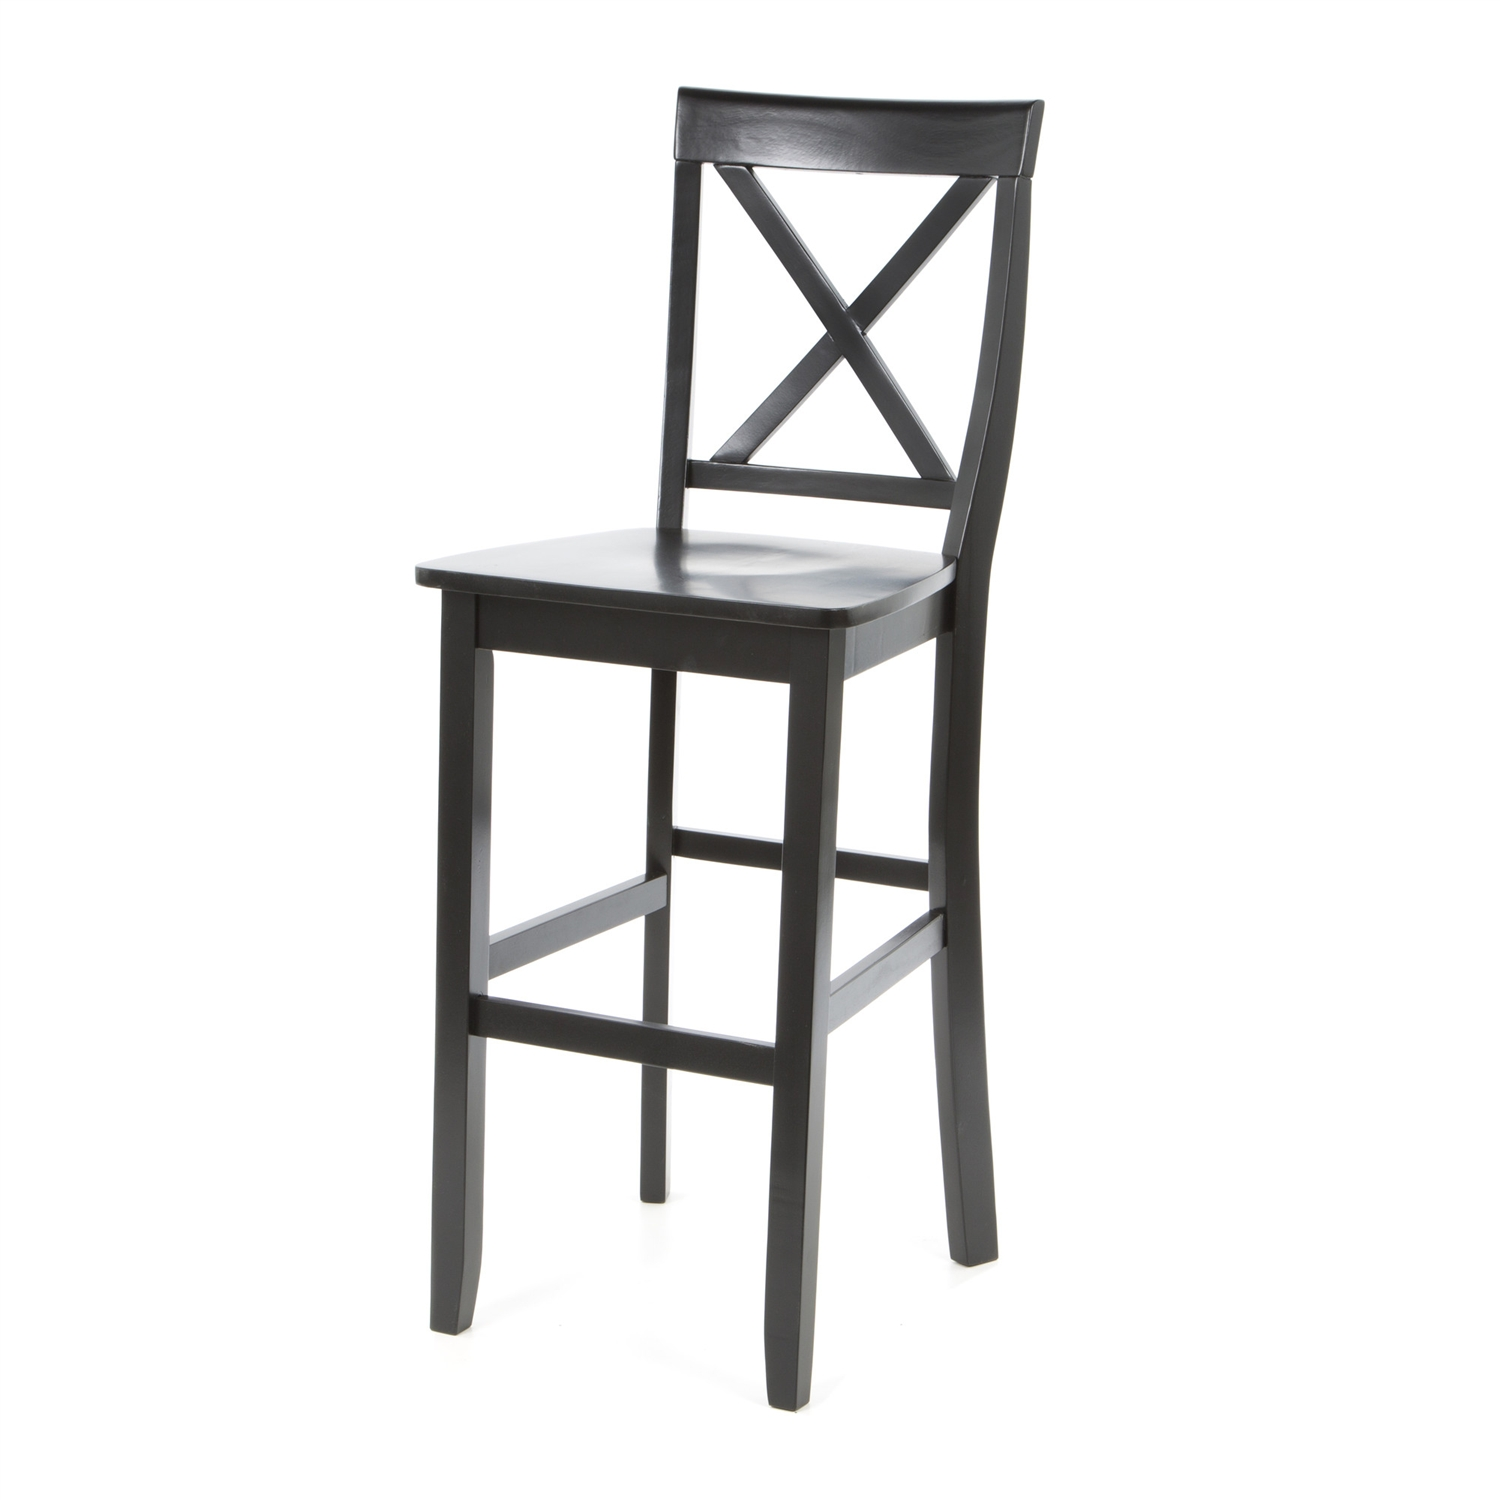 Set Of 2 X Back Solid Wood 30 Inch Barstools In Black Finish